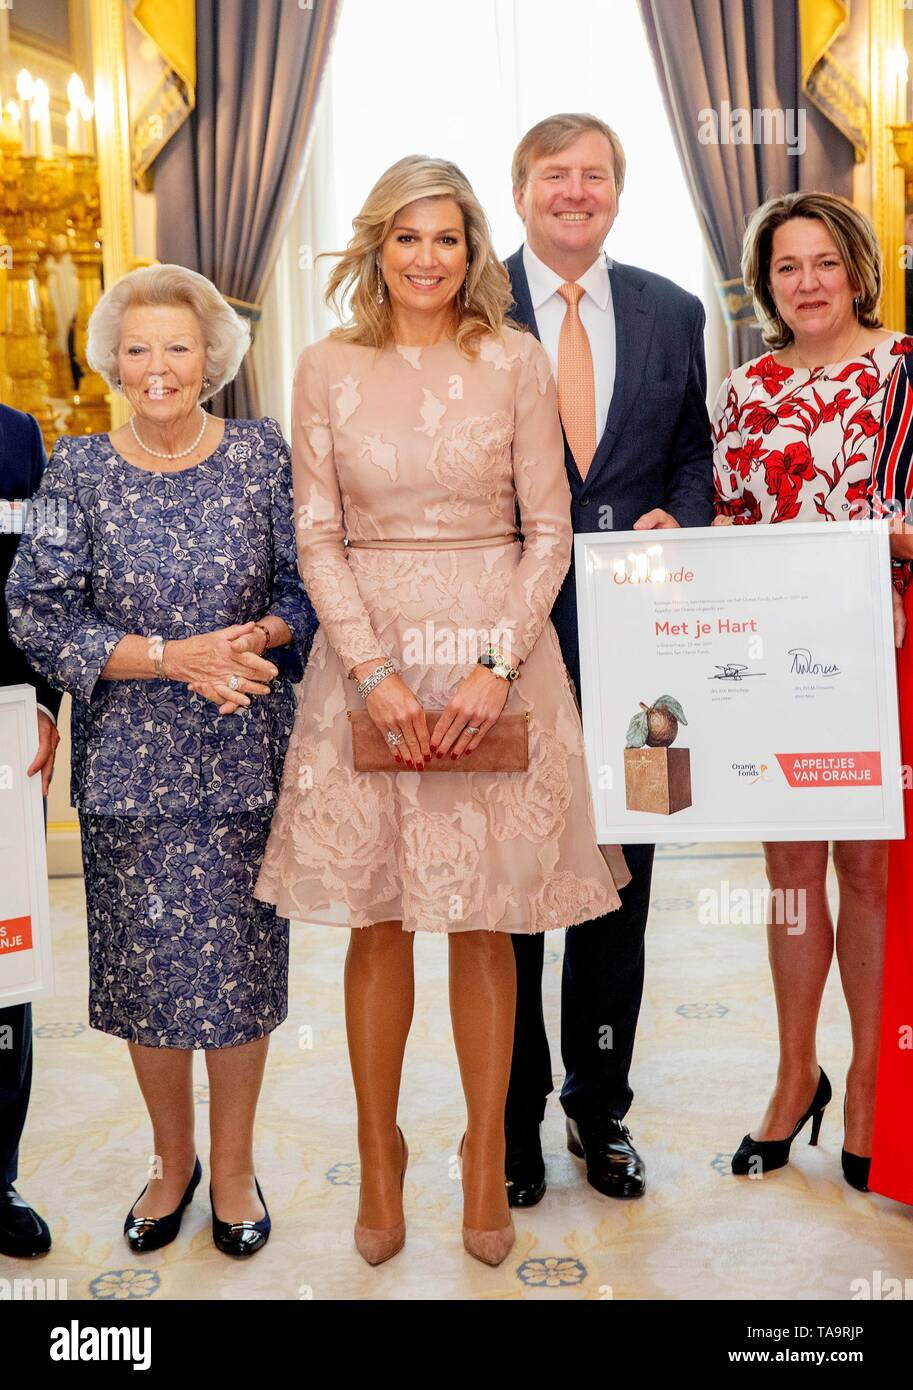 The Hague, Netherlands. 23rd May, 2019. Queen Maxima of The Netherlands at Palace Noordeinde in The Hague, on May 23, 2019, hands out the awards of the Appeltjes van Oranje, King Willem-Alexander and Princess Beatrix also attending the ceremony Credit: Albert Nieboer/Netherlands OUT/Point De Vue OUT  /dpa/Alamy Live News Stock Photo